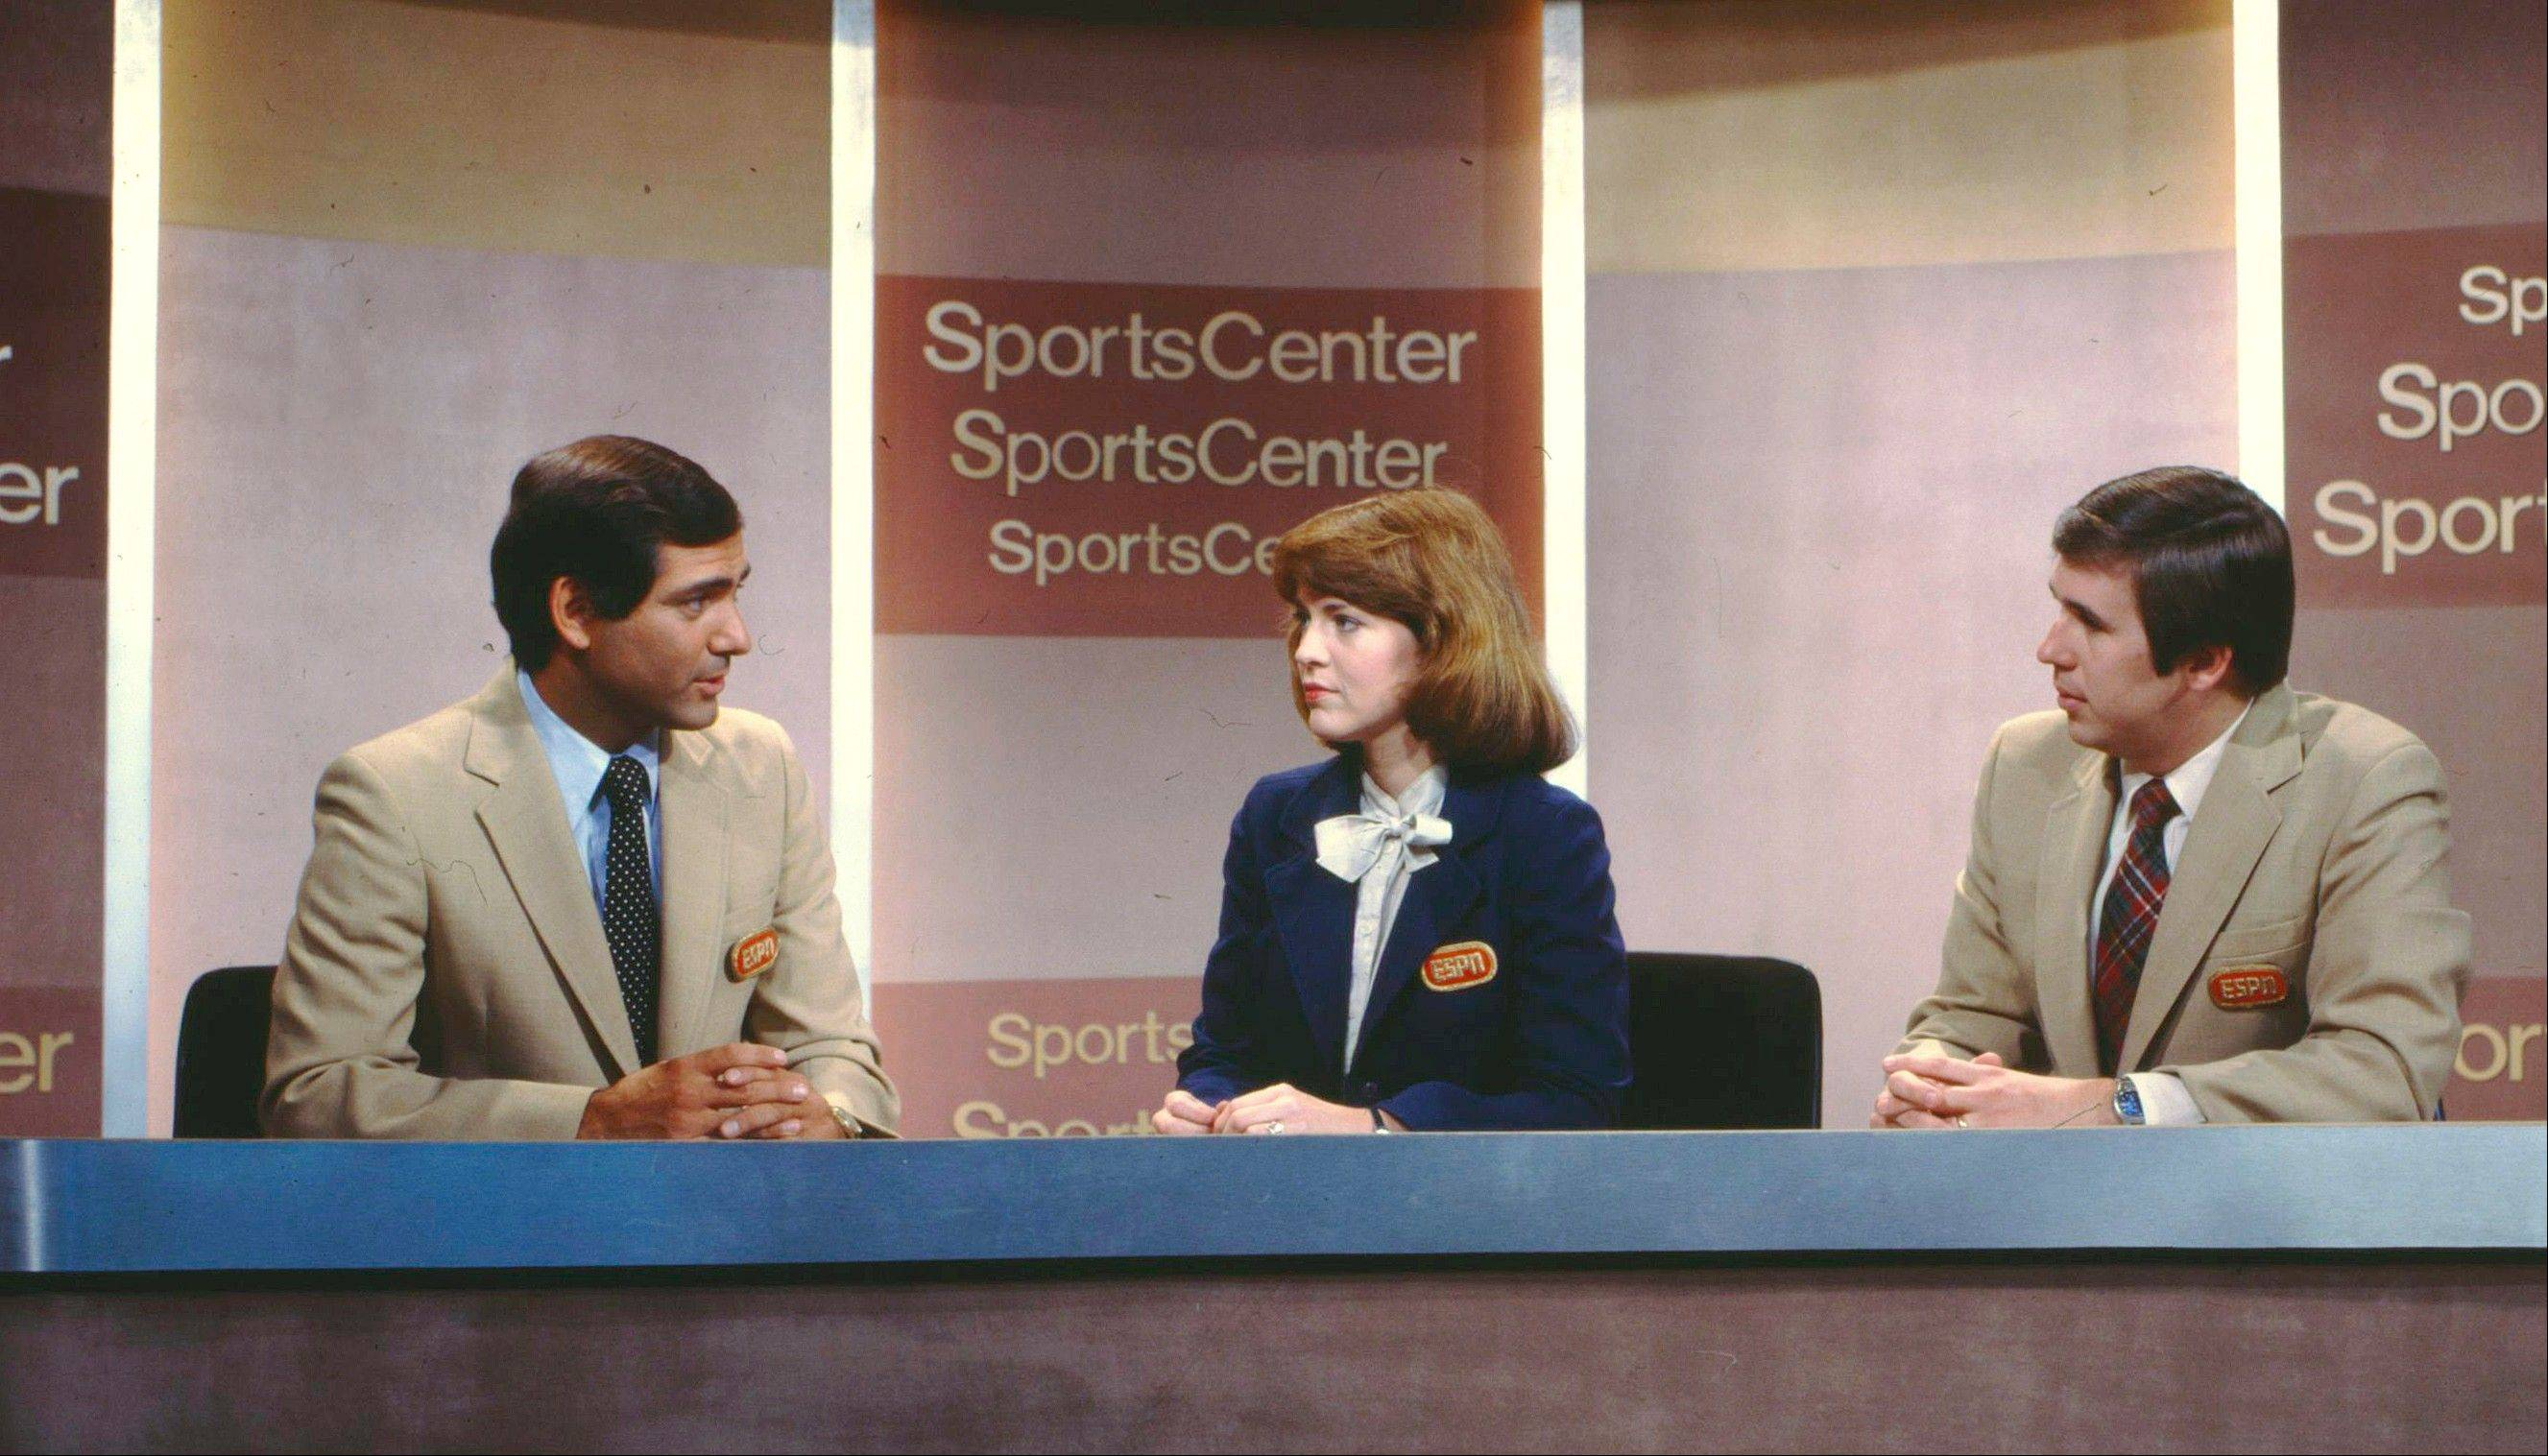 George Grande, left, Sharon Smith and Bob Ley were just a few of the first broadcasters on ESPN's SportsCenter back in 1981. On Thursday, ESPN will air its 50,000th SportsCenter, the network's flagship show of highlights, news and analysis that has had a major impact on the nation's sports culture.